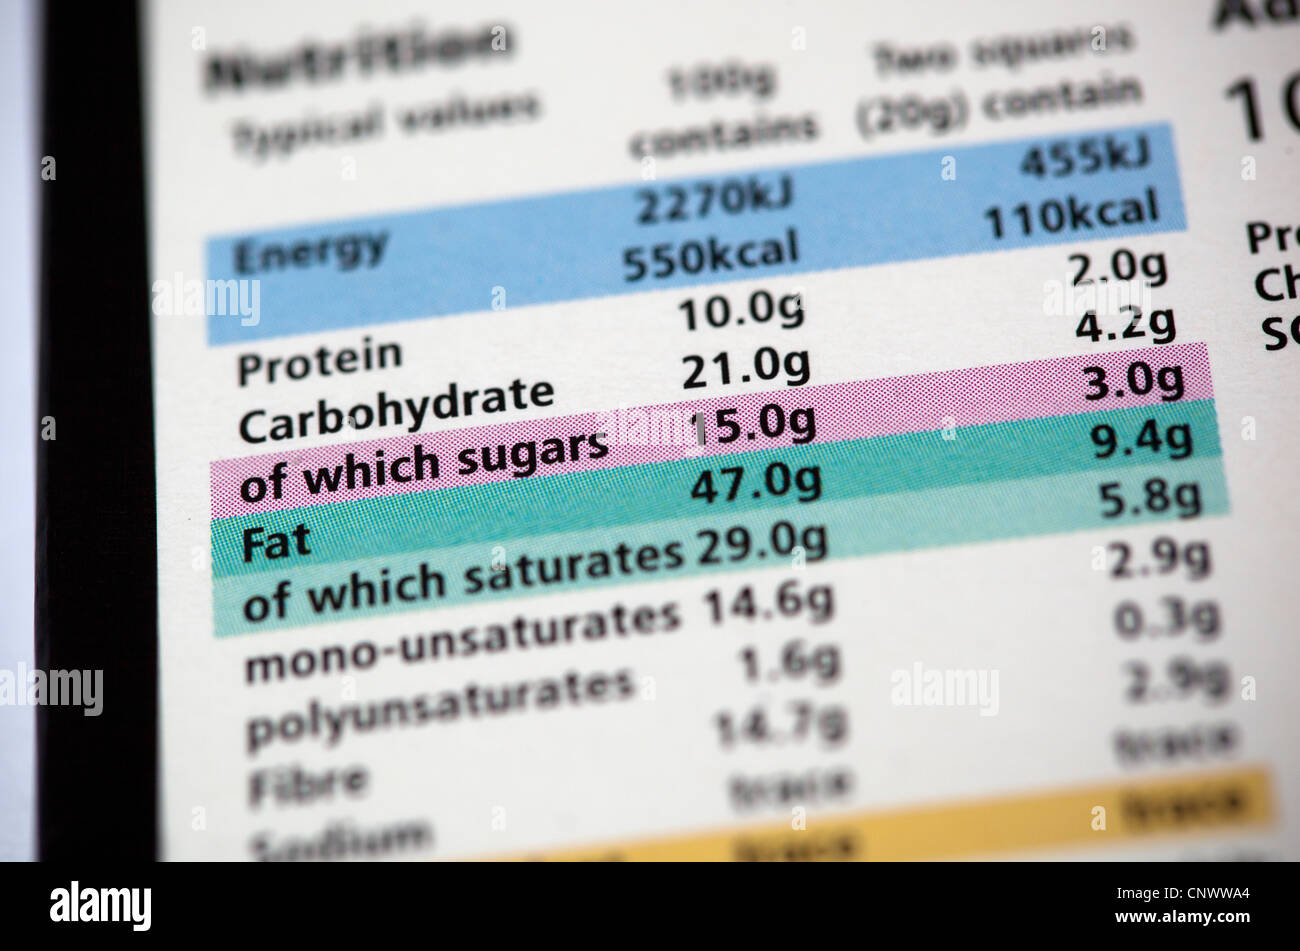 Food Label Stock Photos & Food Label Stock Images - Alamy